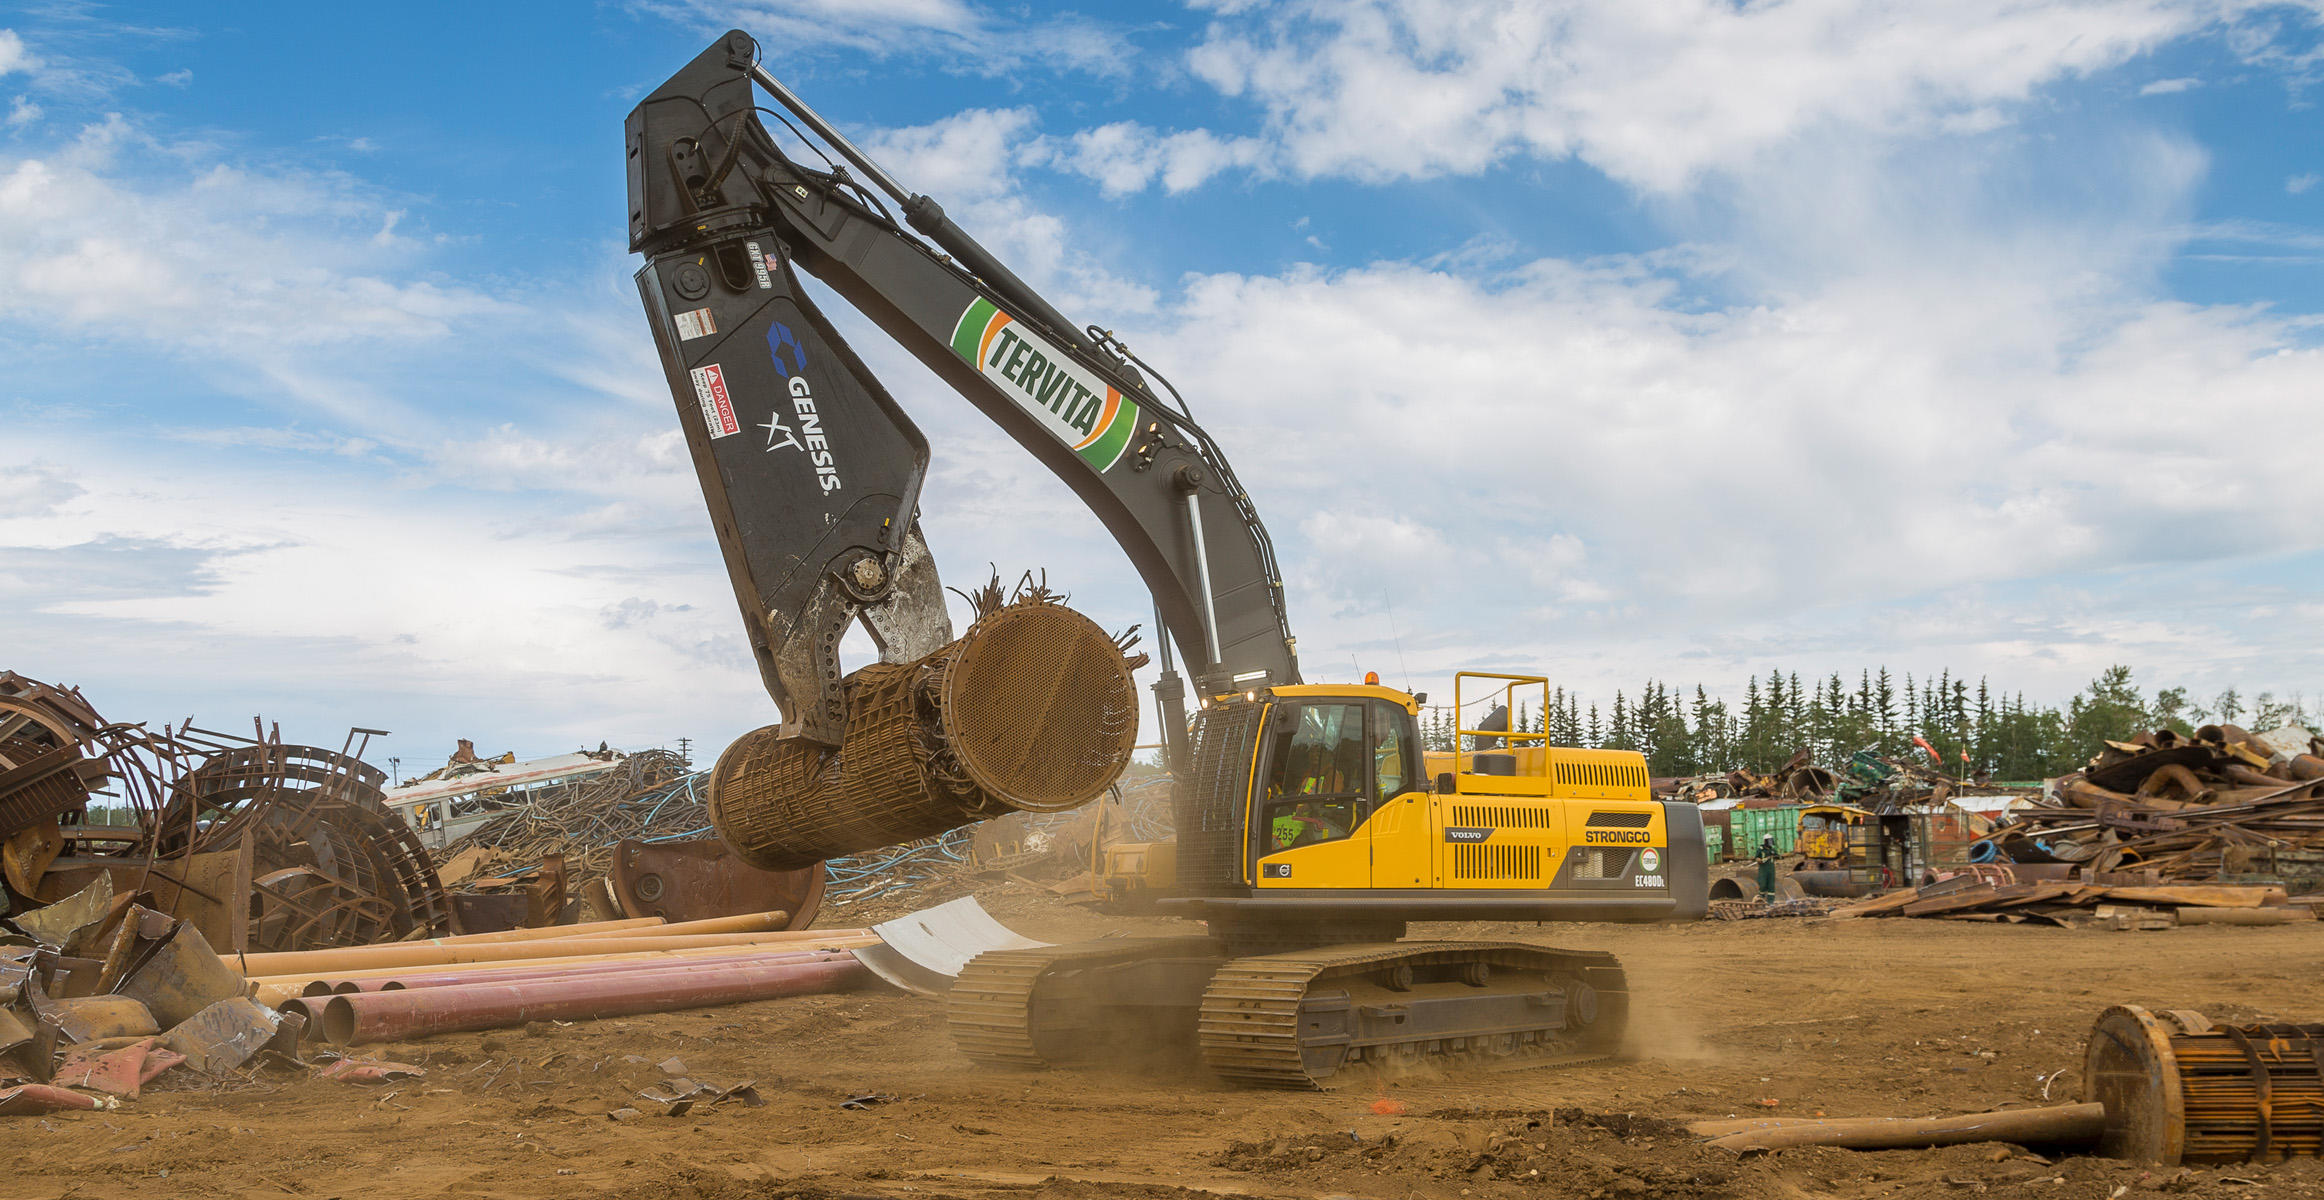 Volvo EC480D crawler excavator with shear at Tervita Metals Recycling worksite in Canada